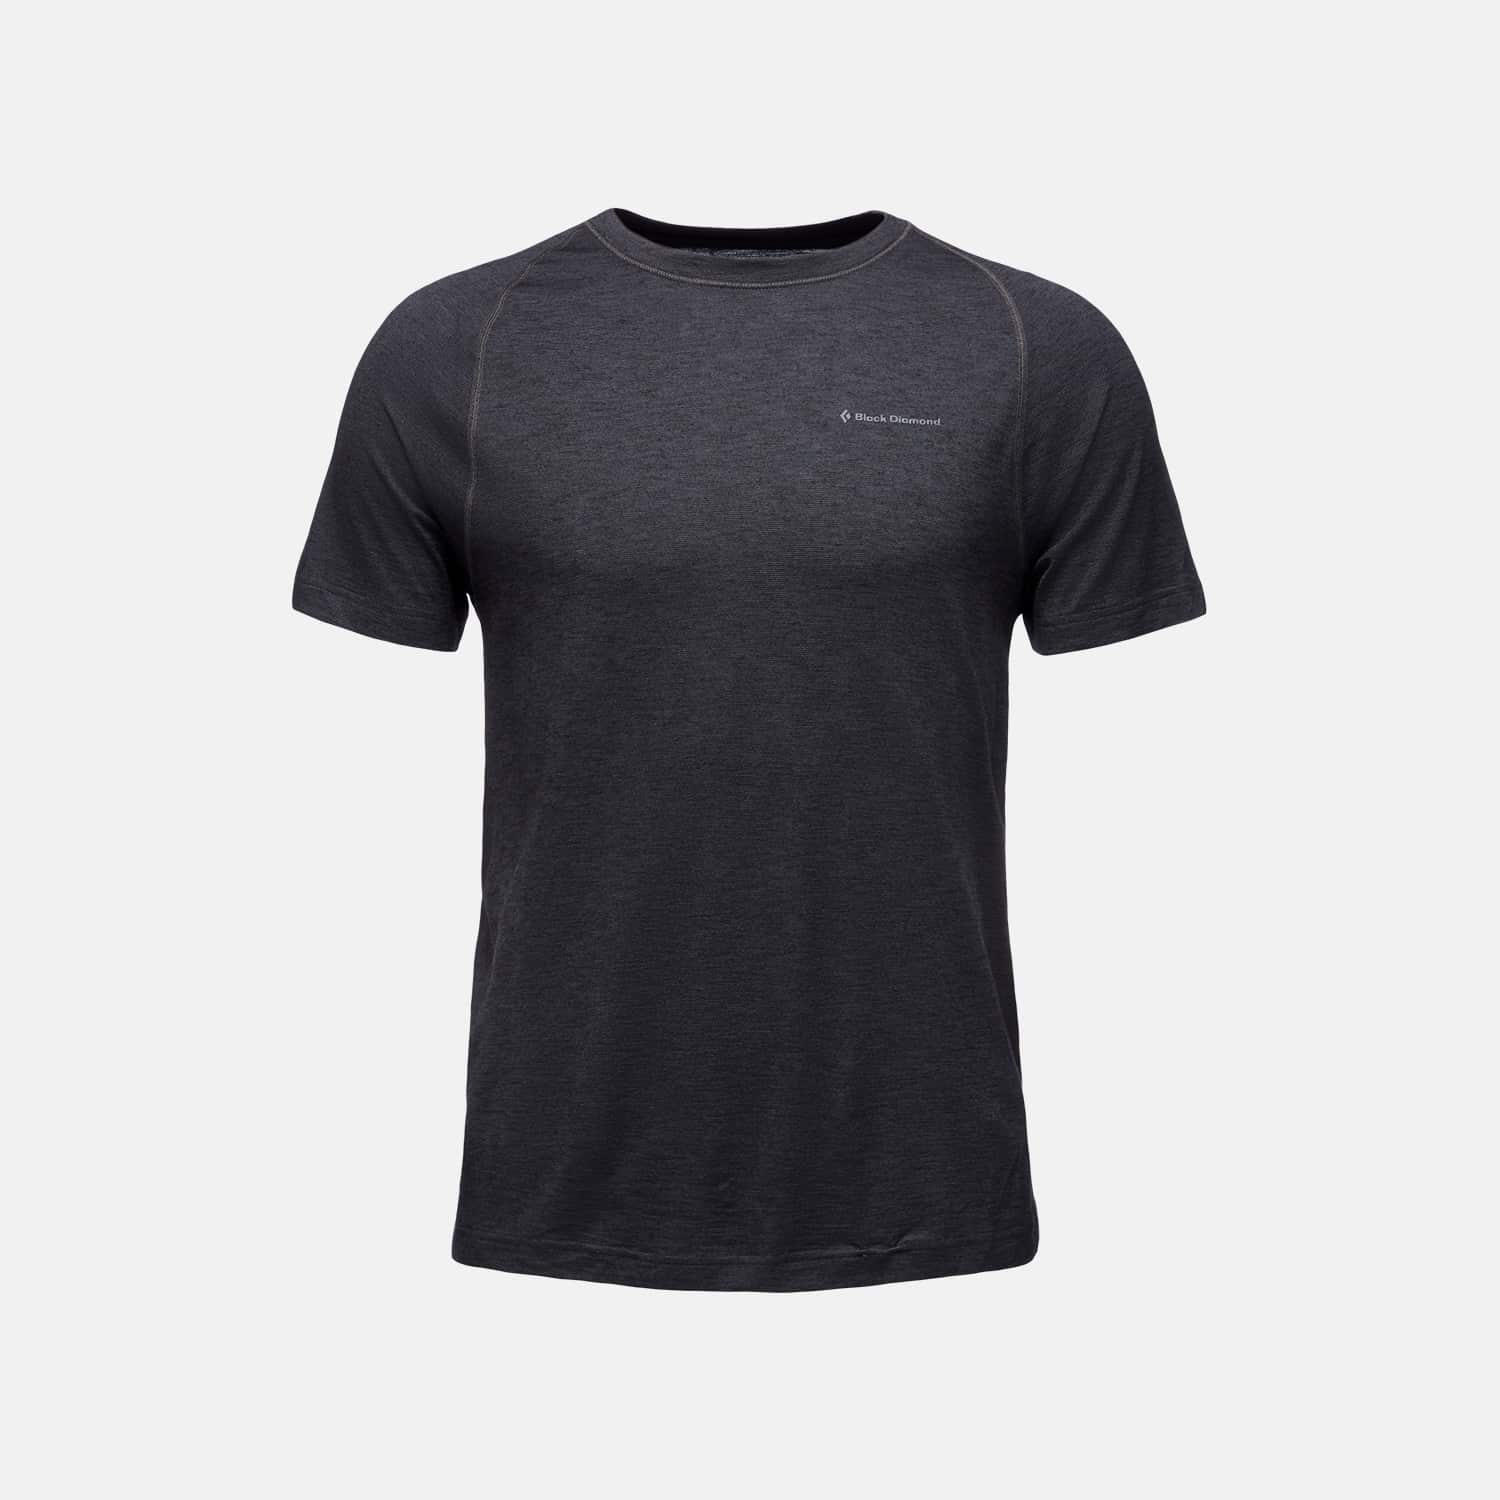 Outville-Trailrunning-Black-Diamond-Tee